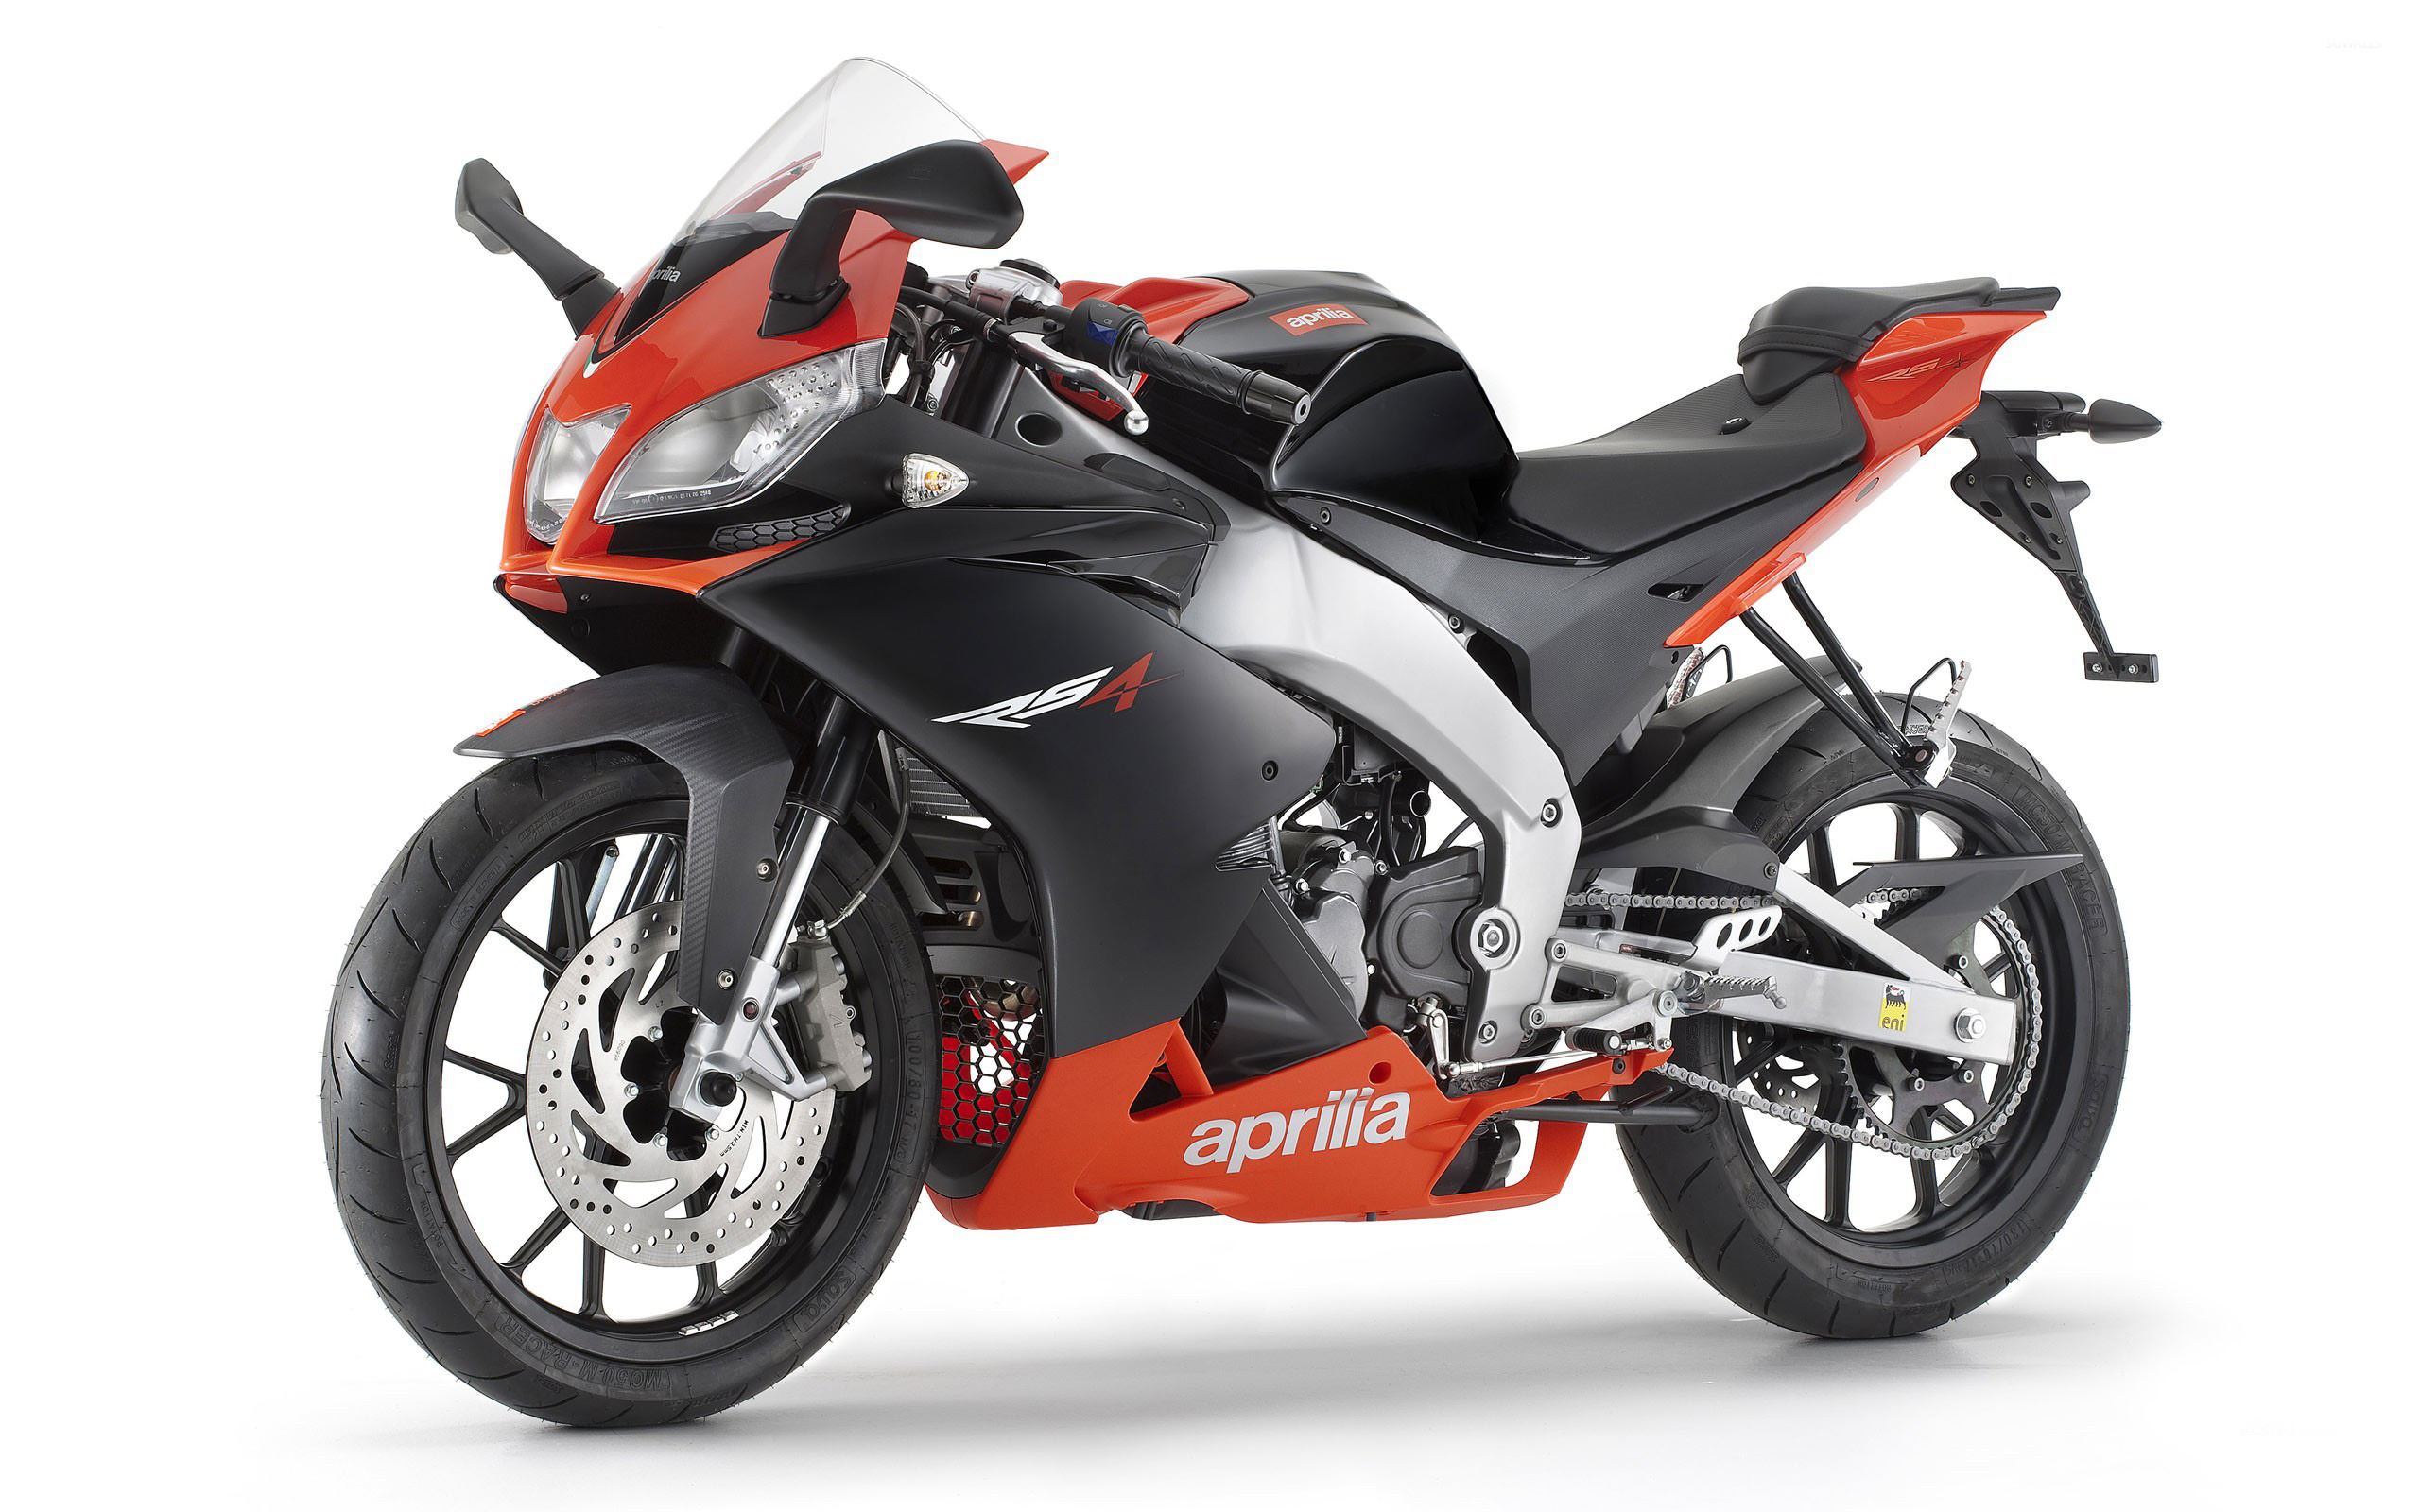 aprilia rs4 125 5 wallpaper motorcycle wallpapers 10949. Black Bedroom Furniture Sets. Home Design Ideas